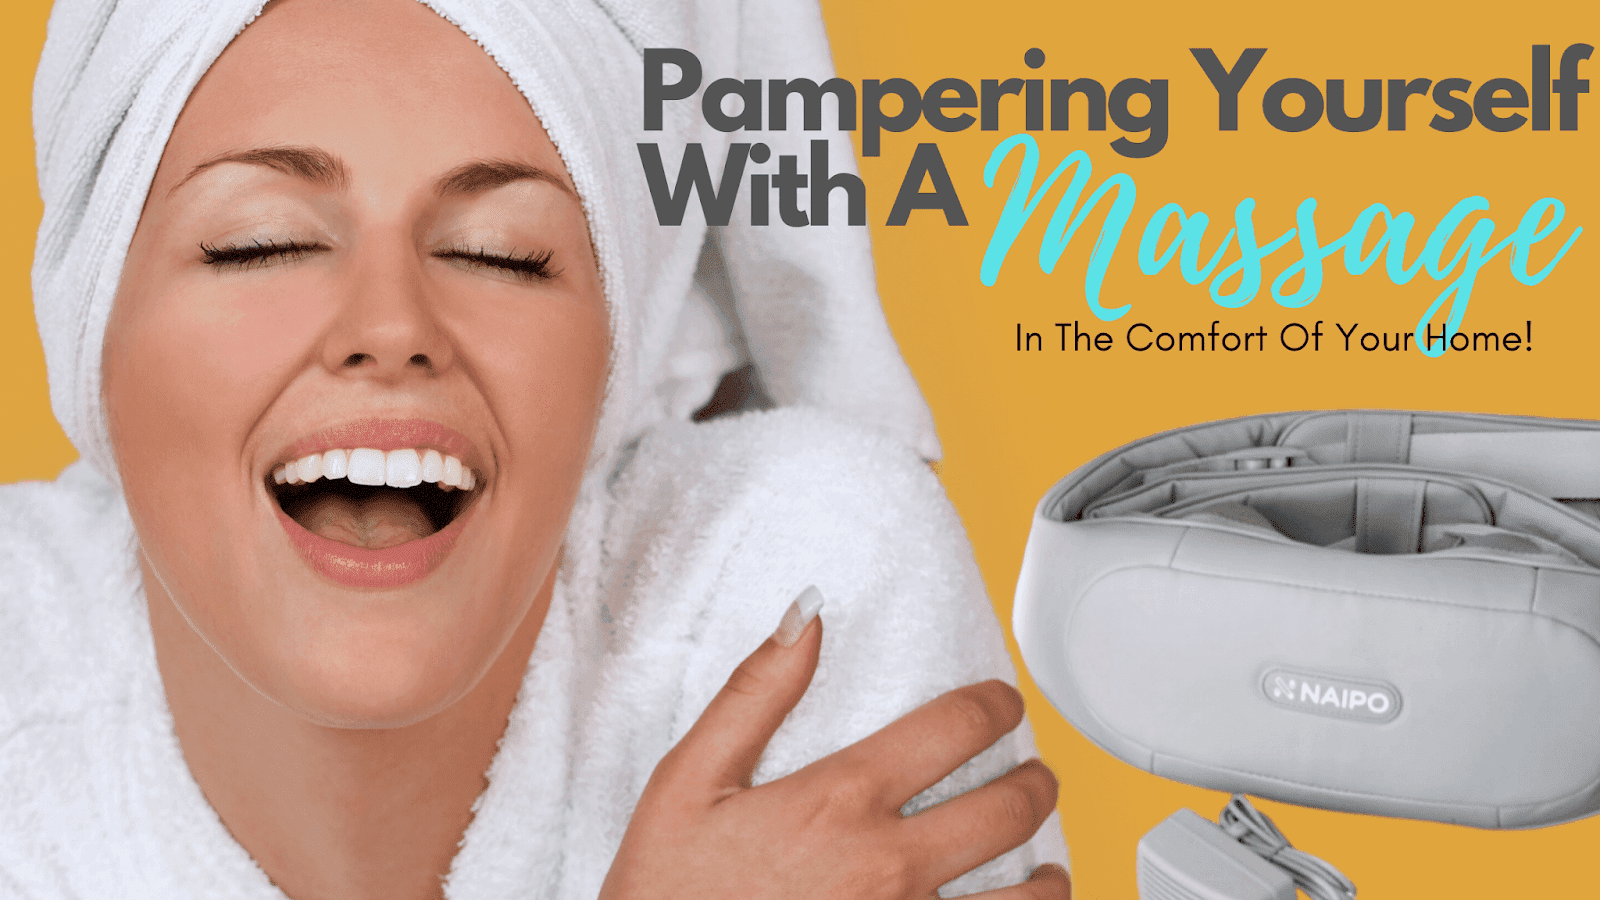 Pampering Yourself With A Massage In The Comfort Of Your Home  By Barbies Beauty Bits